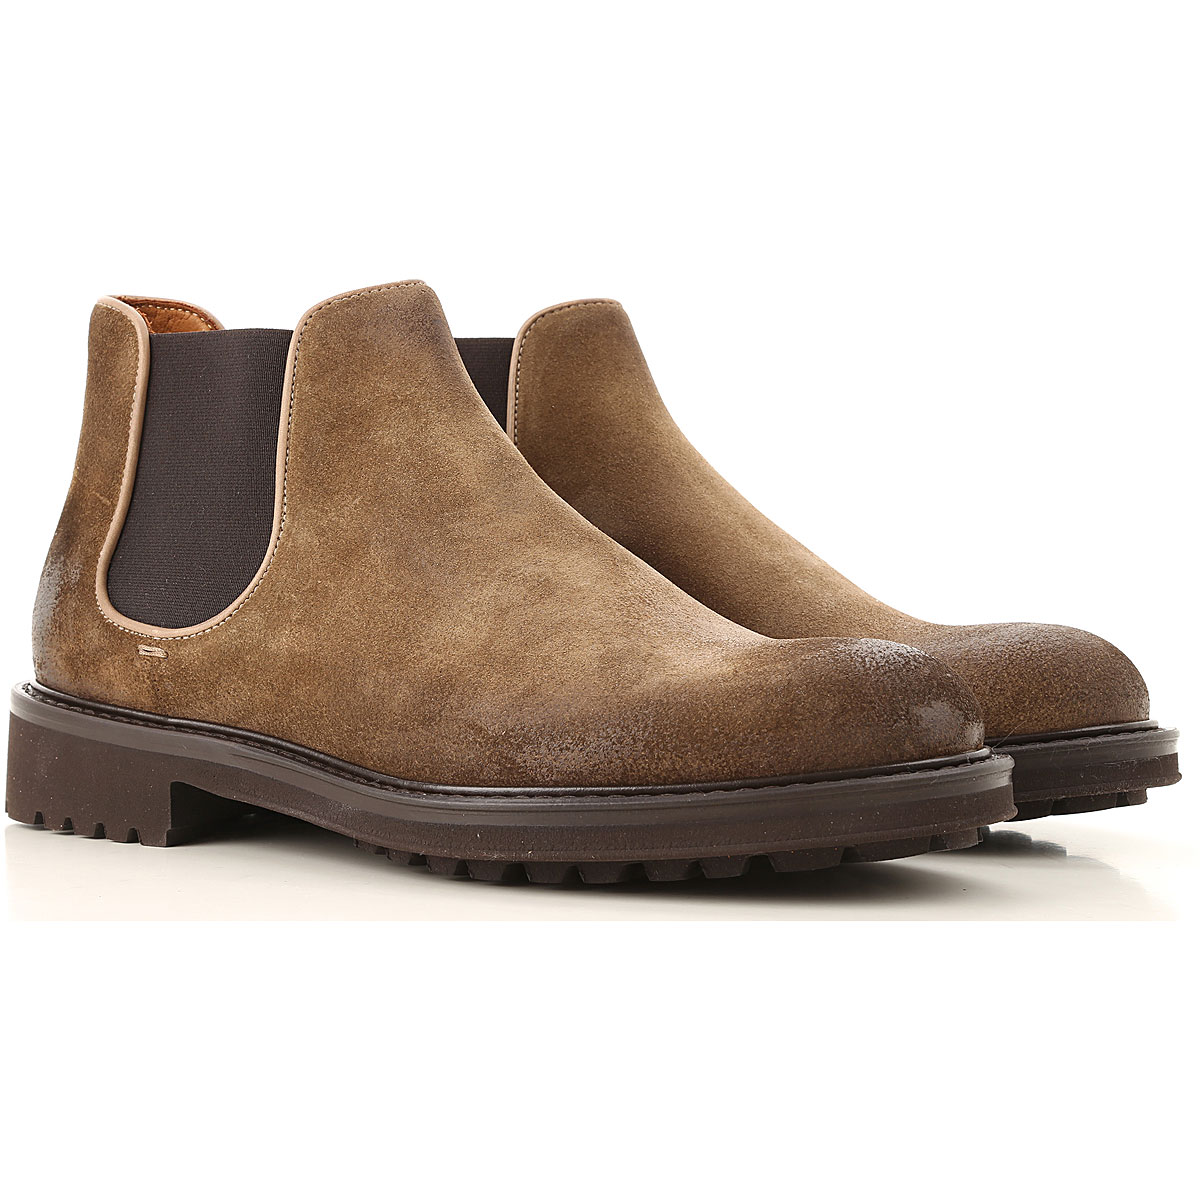 Doucals Chelsea Boots for Men Tobacco USA - GOOFASH